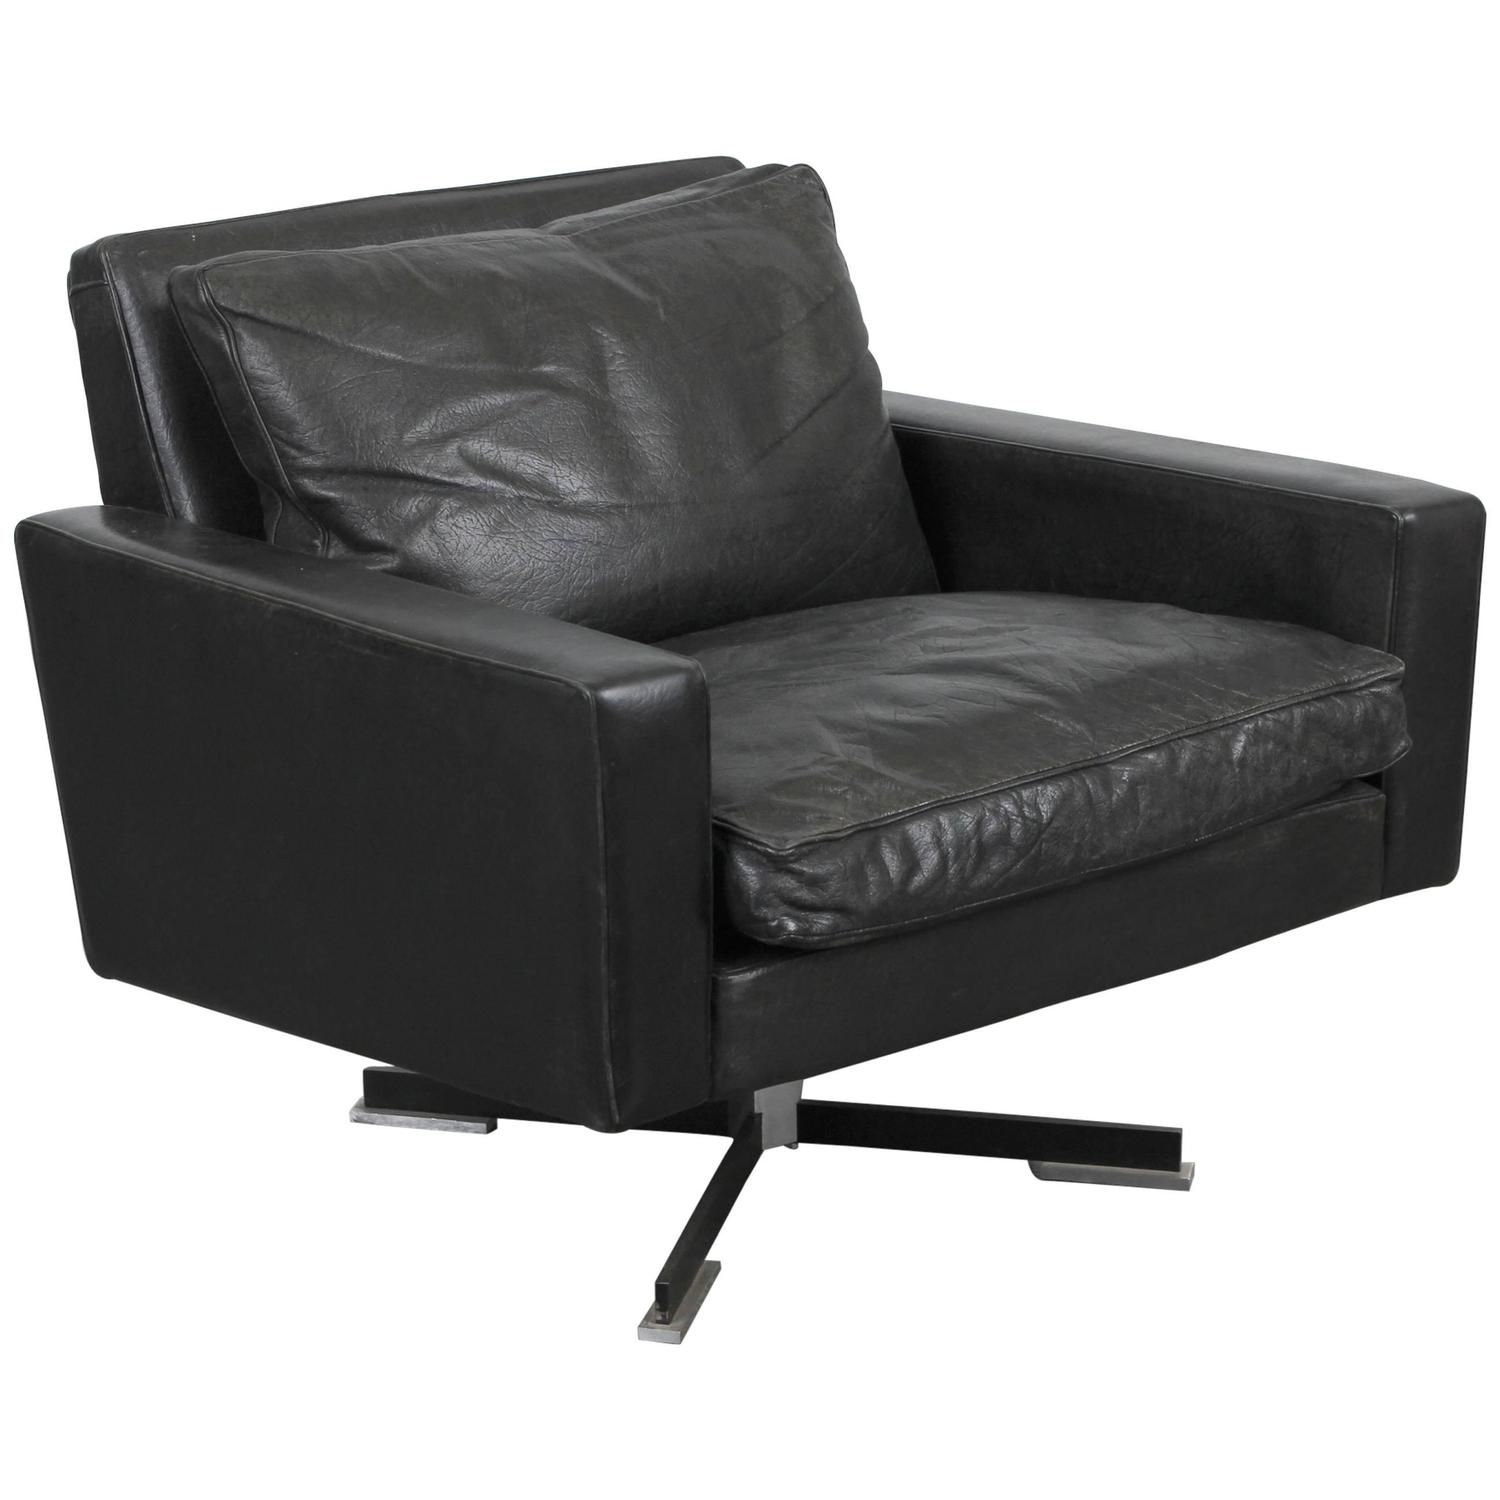 25 Best Leather Black Swivel Chairs  Sofa Ideas